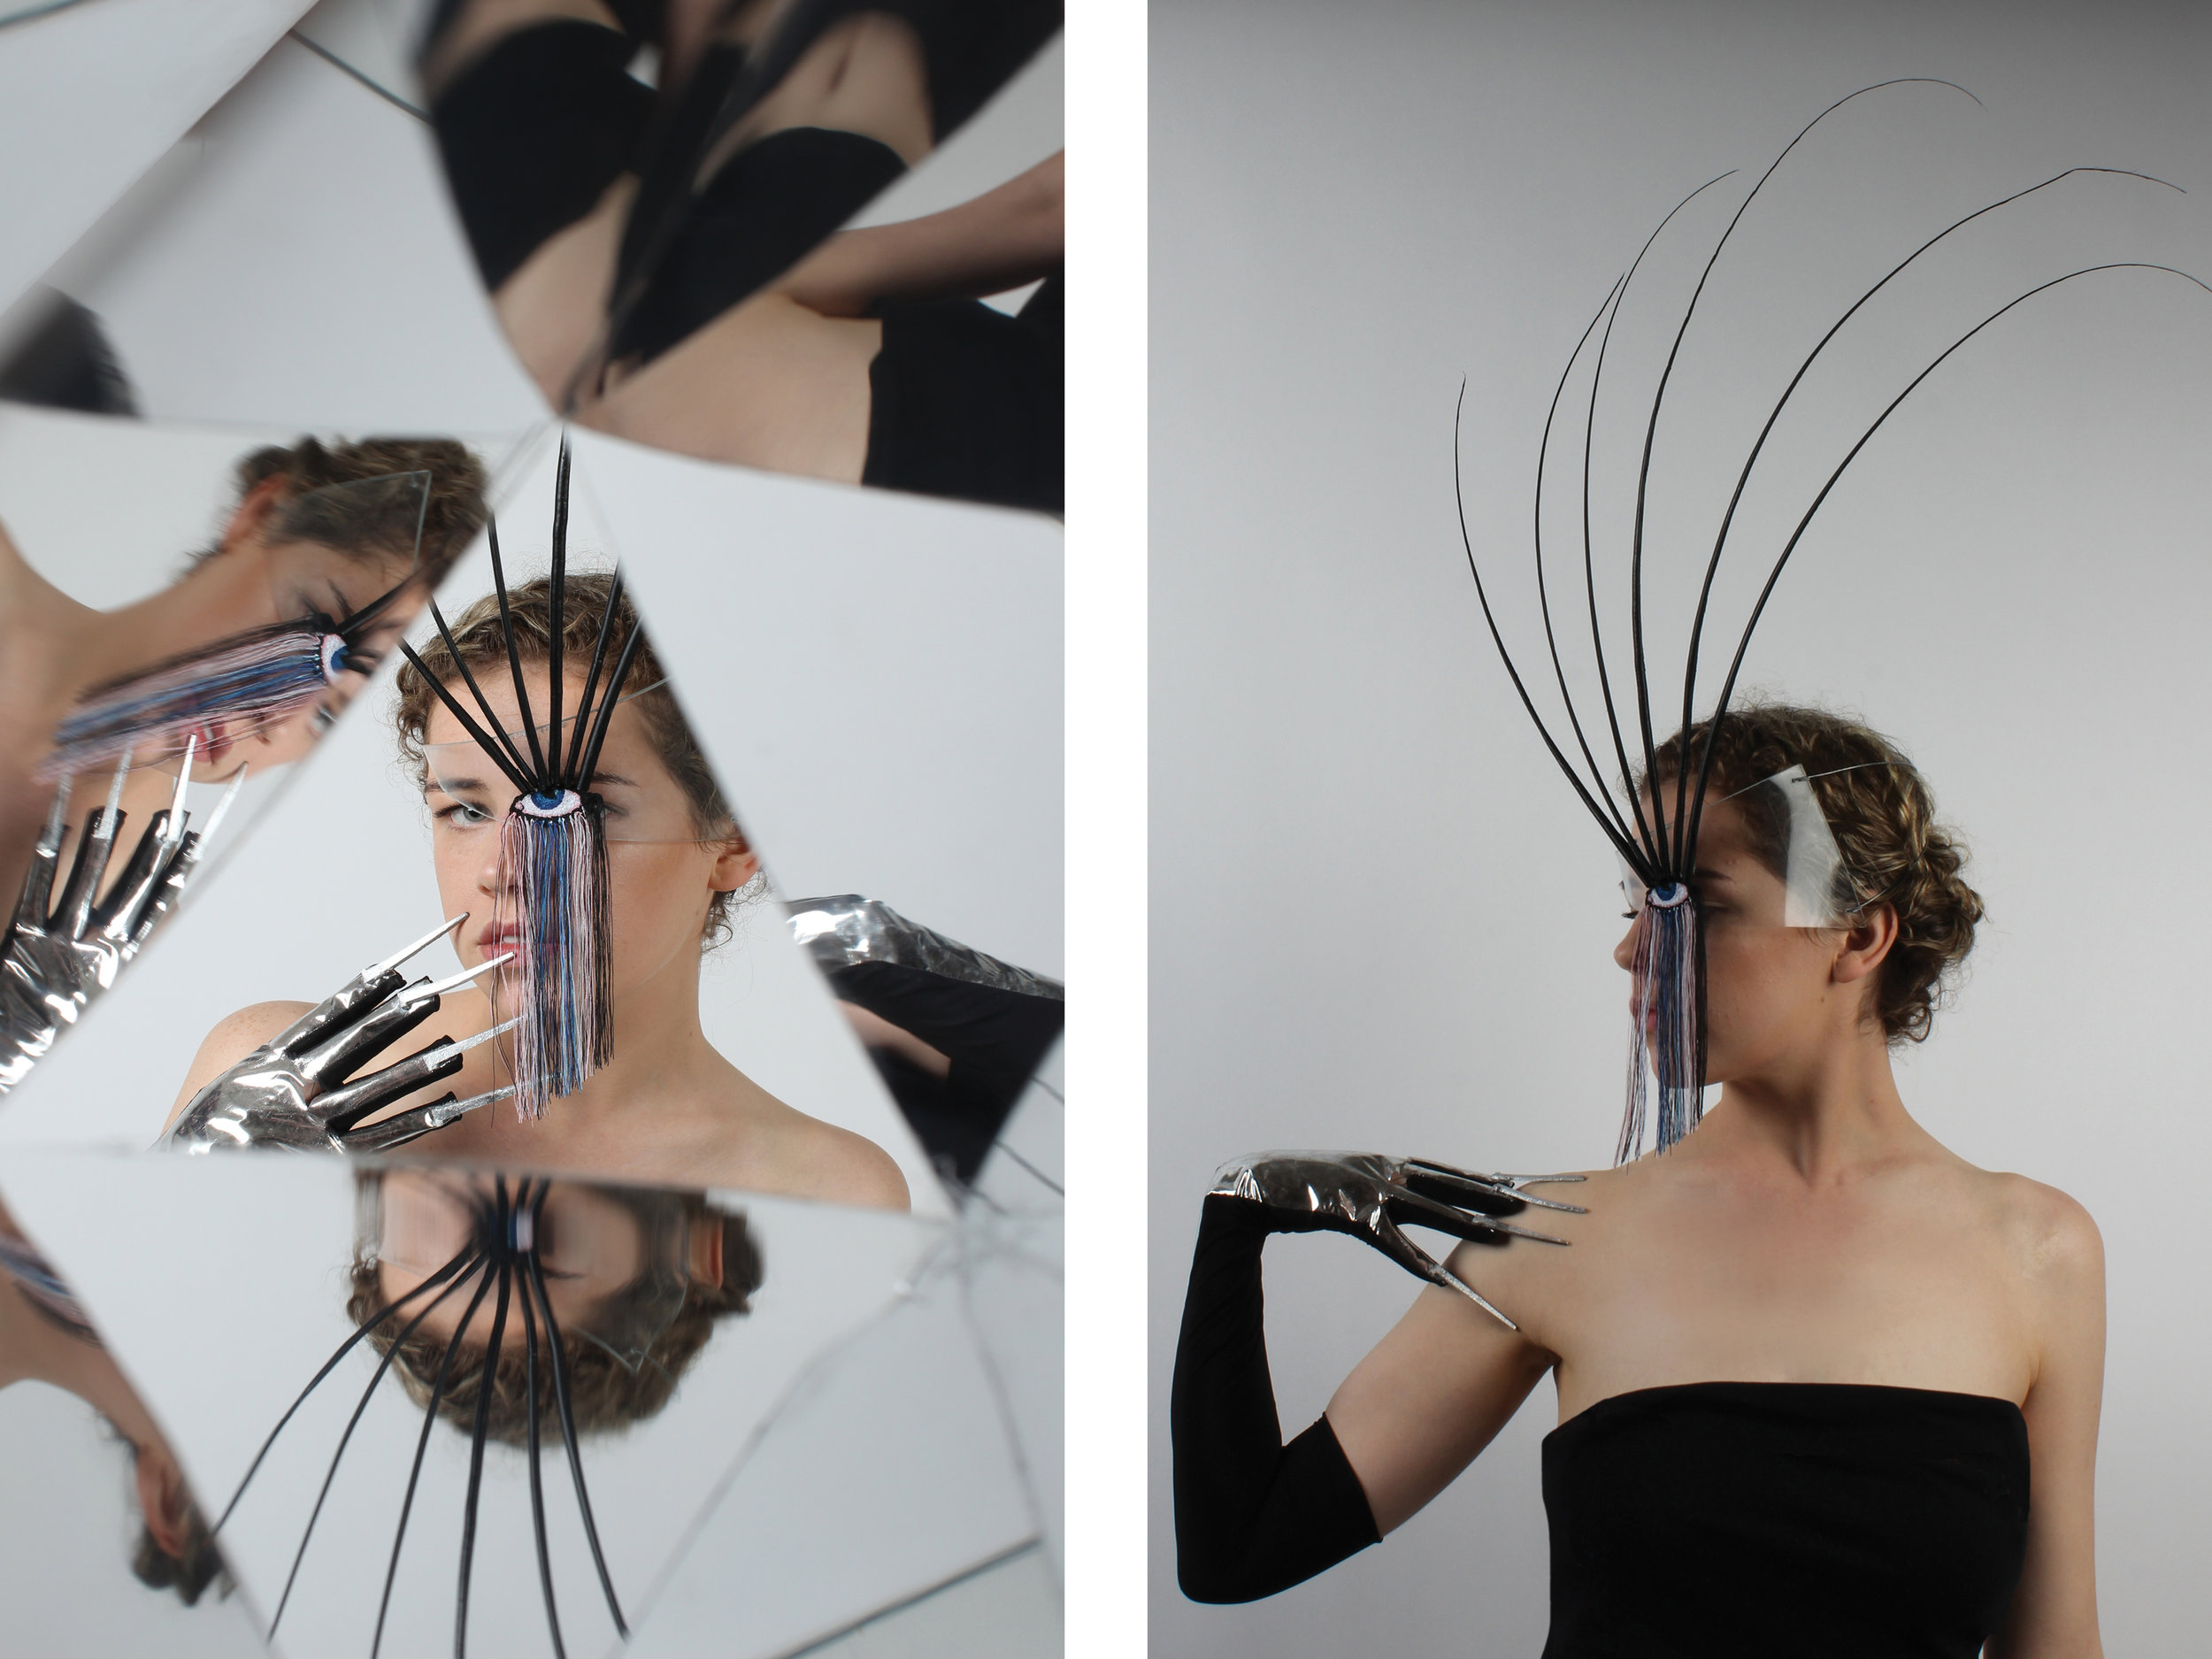 Perspex and ostrich quill mask with embroidered eye giving appearance of extravagant false eyelashes. Metallic evening glove with iron floorboard nails to represent acrylic nails.Surrealist pun and homage to Elsa Schiaparelli.